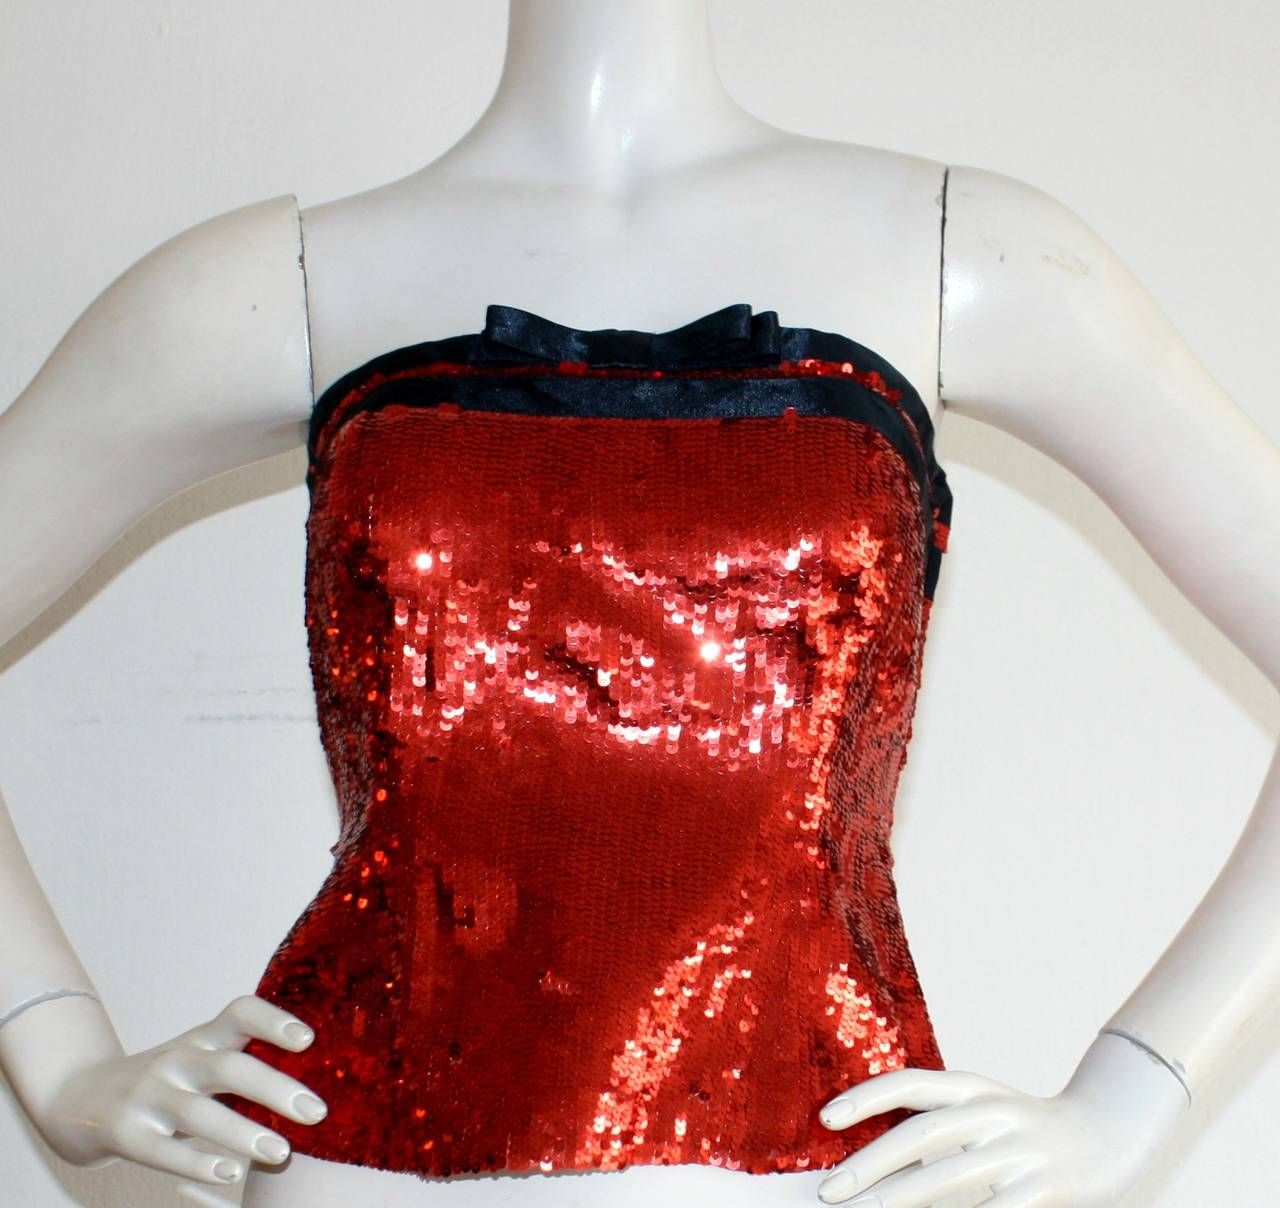 Ravishing vintage Bill BLass sequin bustier, brand new with tages still attached from Neiman Marcus! Sparkle in the all-over red sequin number, complete with a black silk bow. Fully lined. Perfect for your Holiday/New Years Party! In great